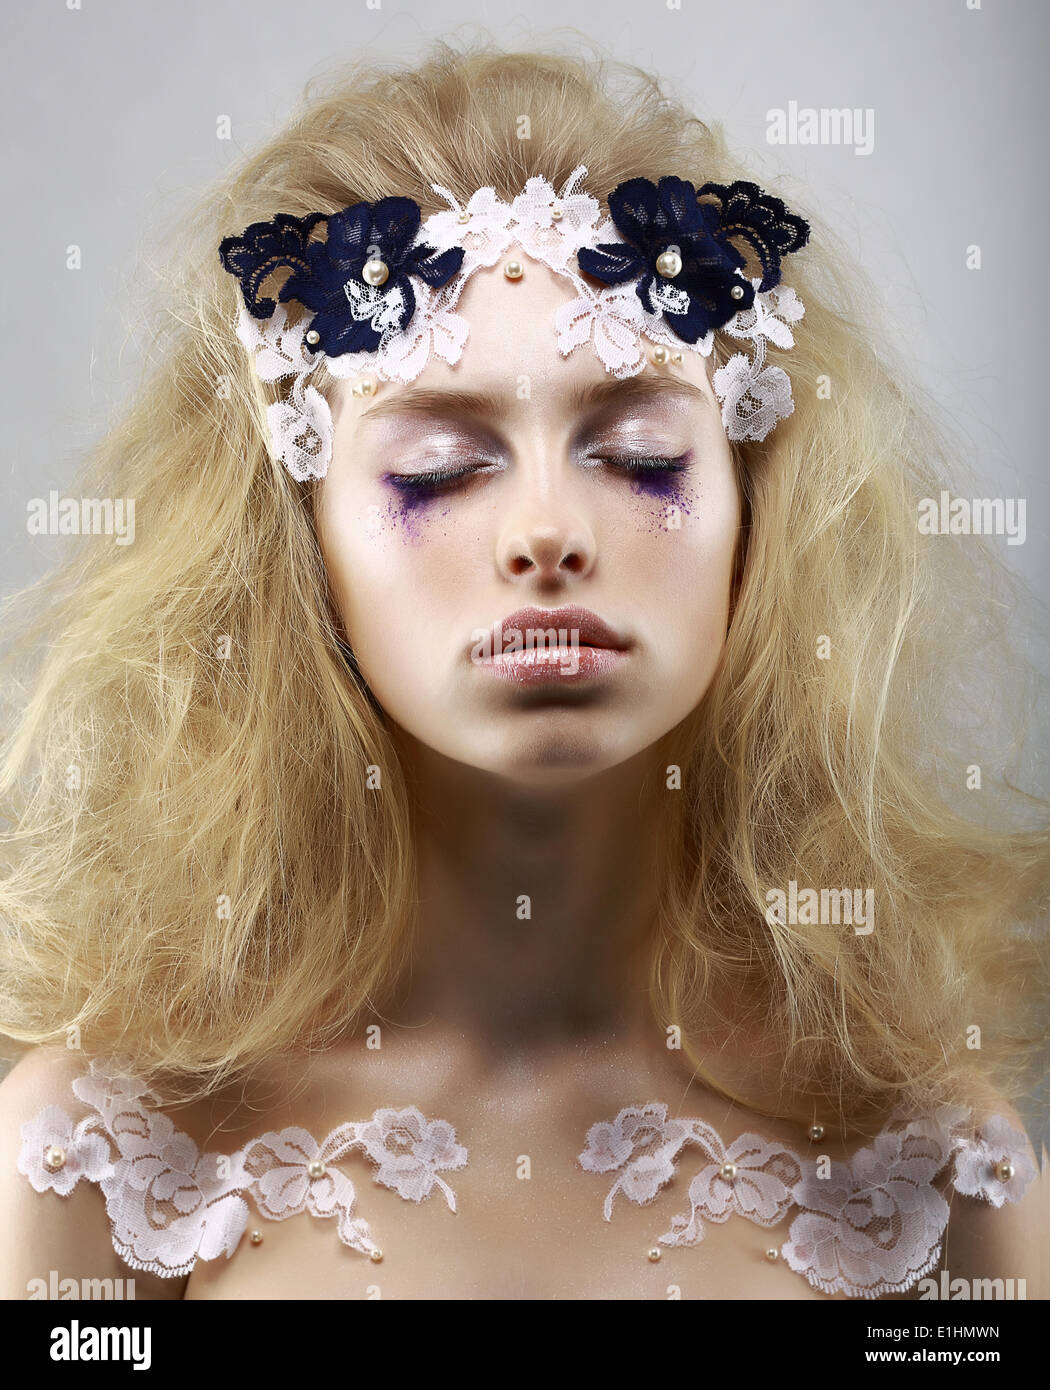 Relax. Styled Enigmatic Blonde with Painted Skin. Dreams with Closed Eyes. Beauty - Stock Image